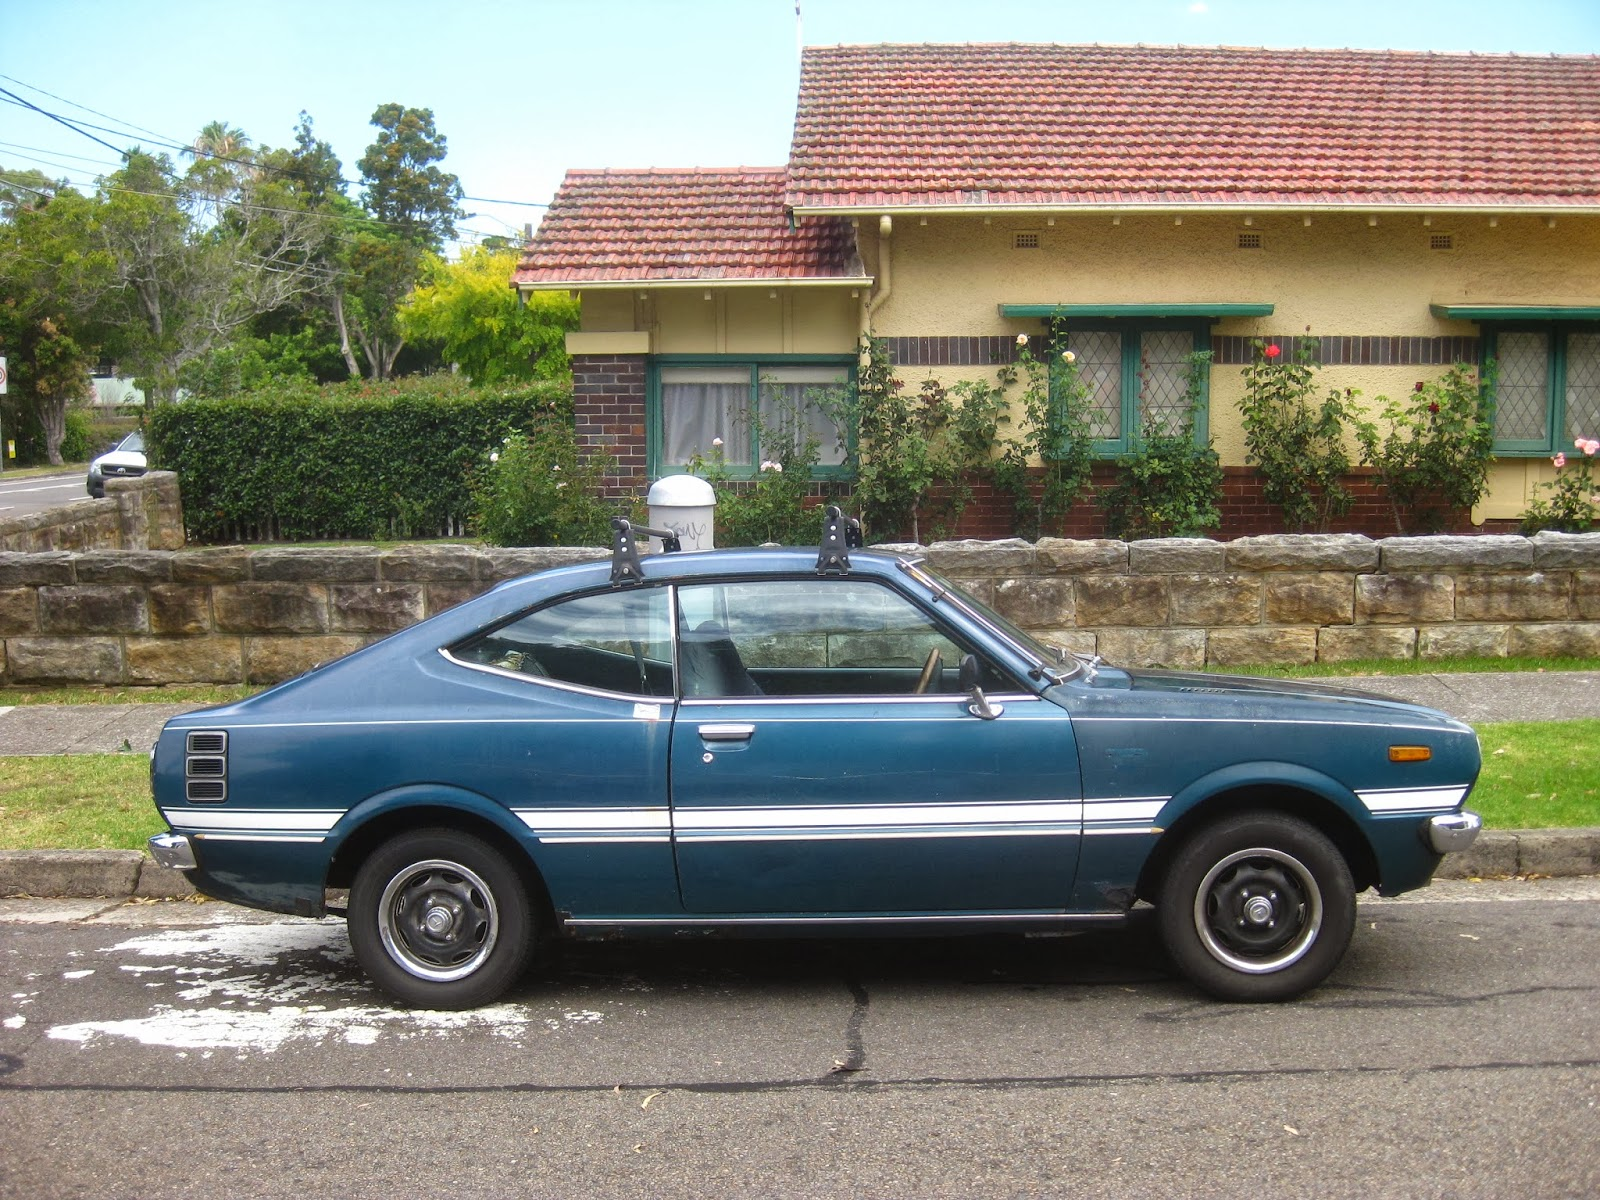 Aussie Old Parked Cars 1978 Toyota Corolla Cs Hardtop